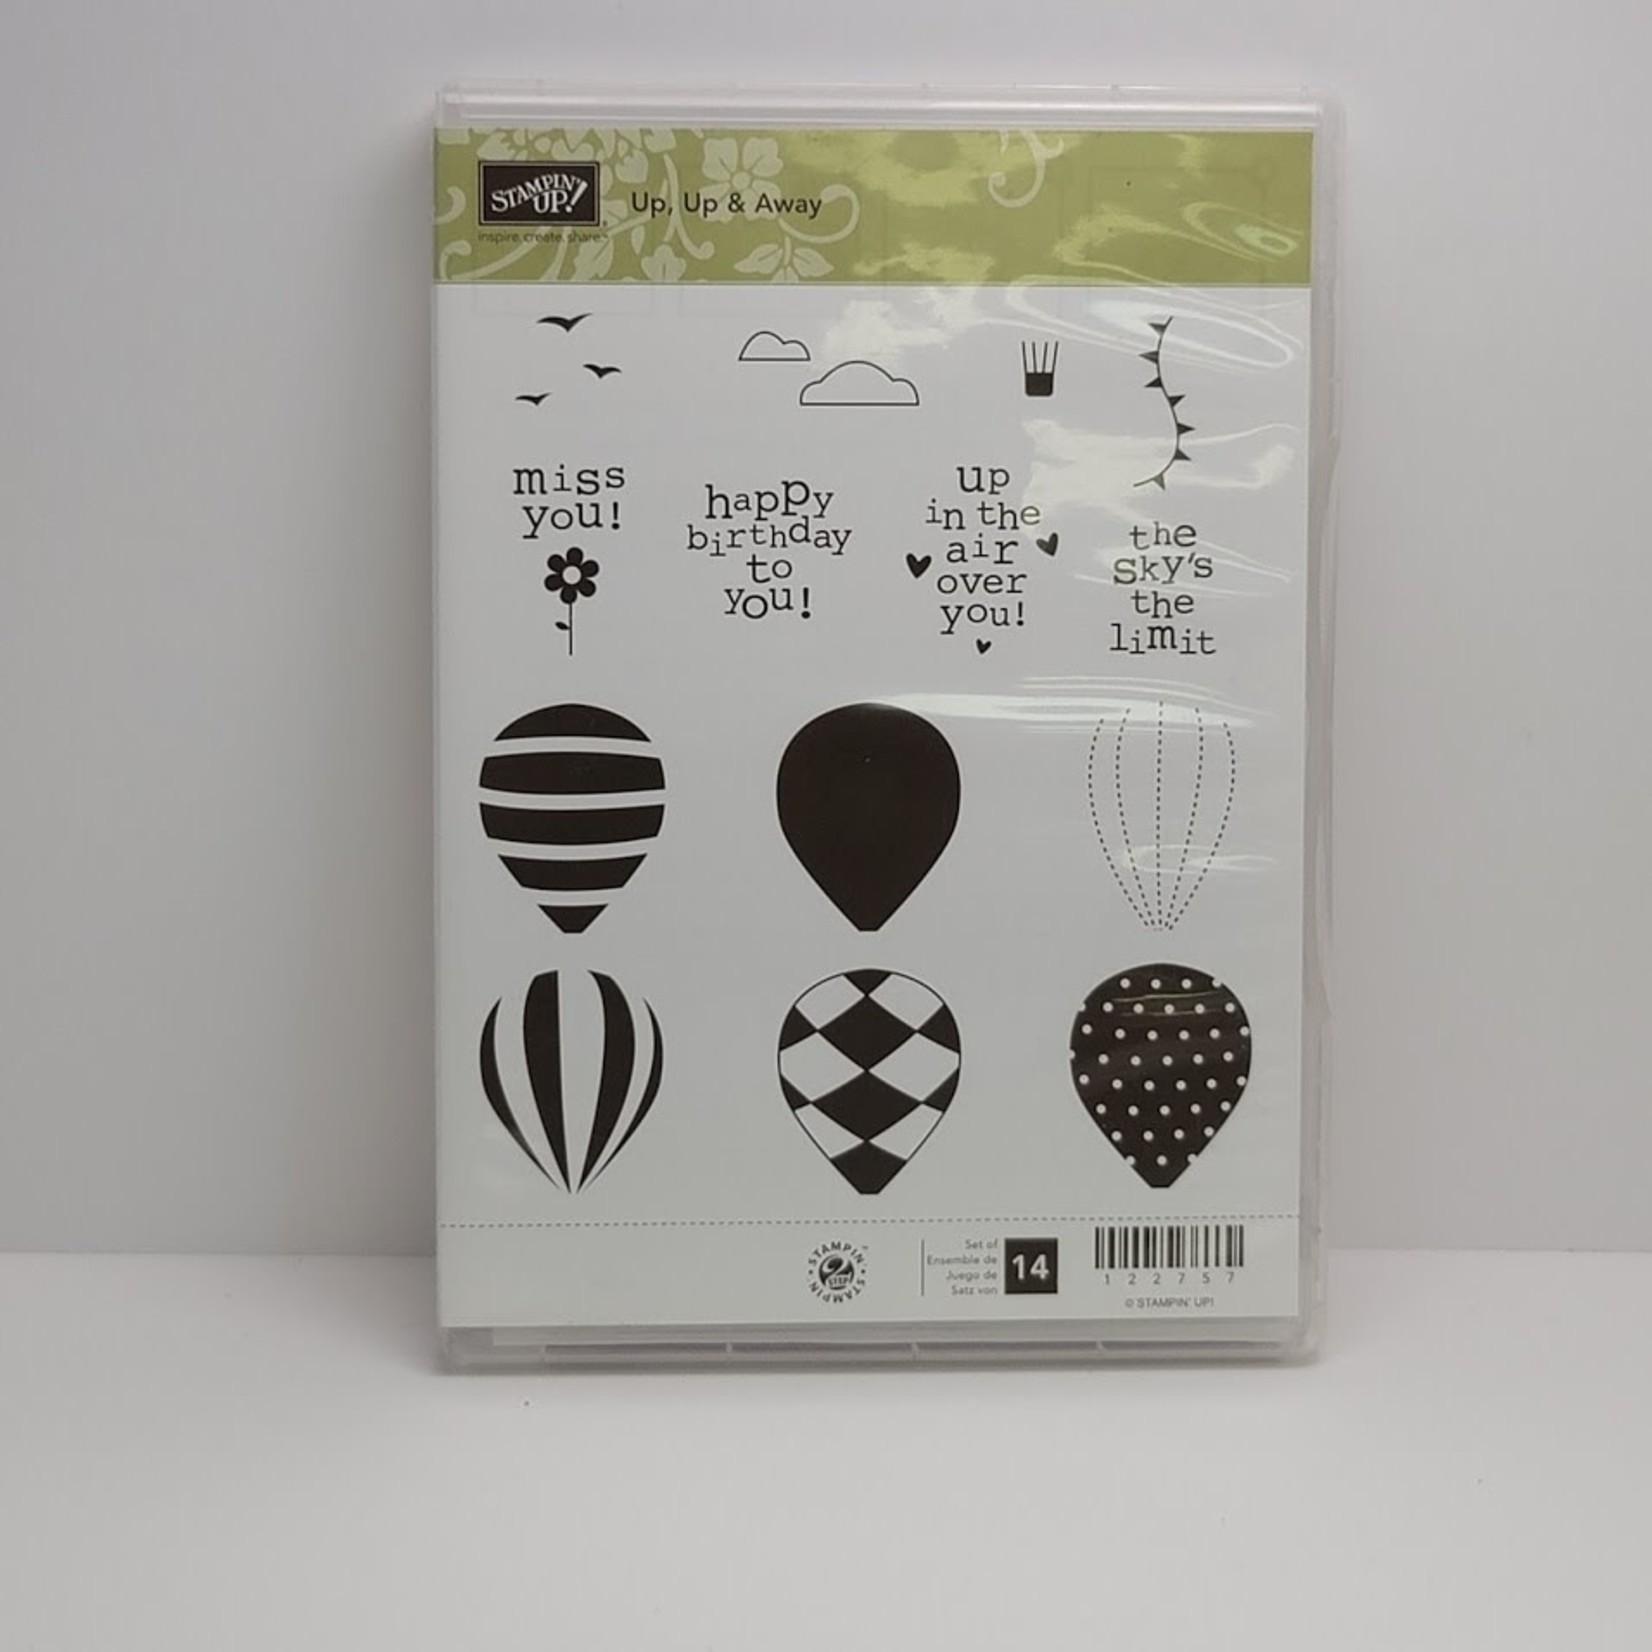 Stampin' Up Stampin' up - Cling Stamps - Up, Up & Away